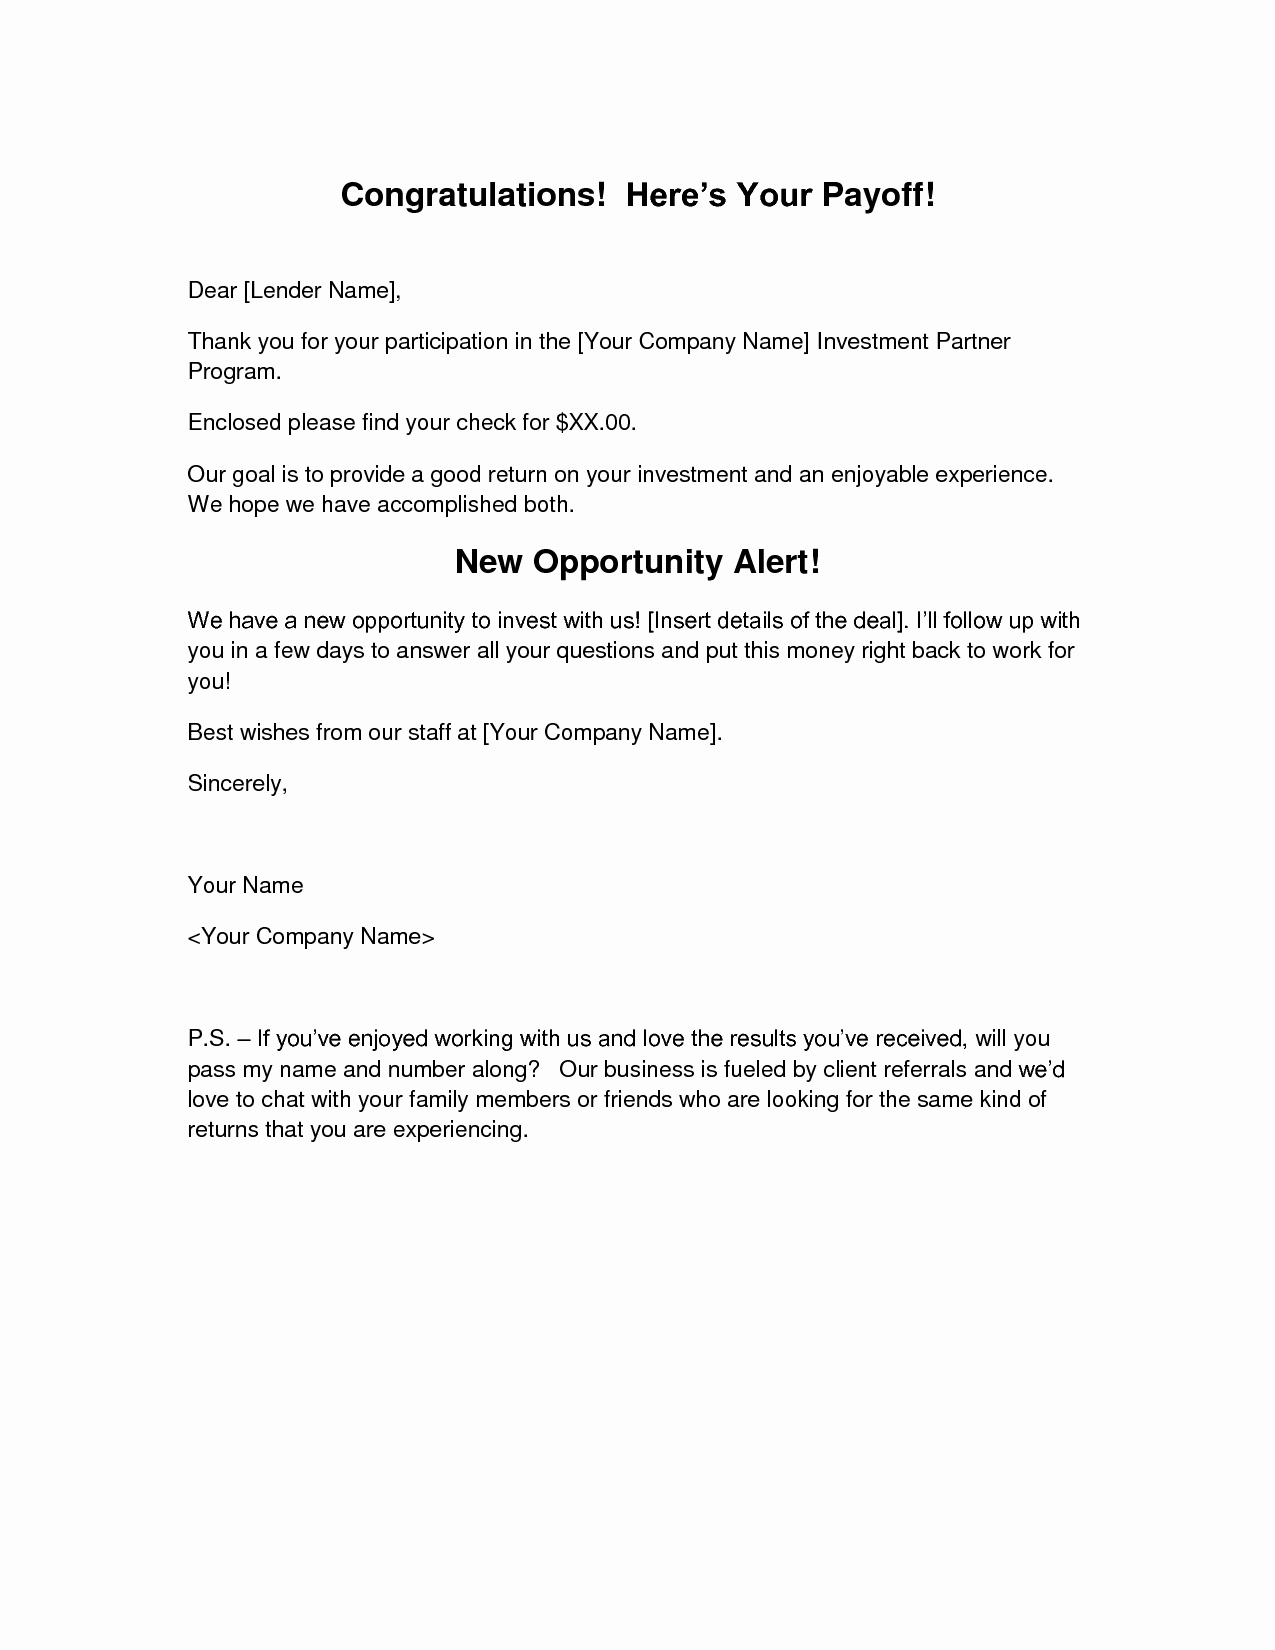 Pay Off Letter Sample New Loan Payoff Request Letter Sample